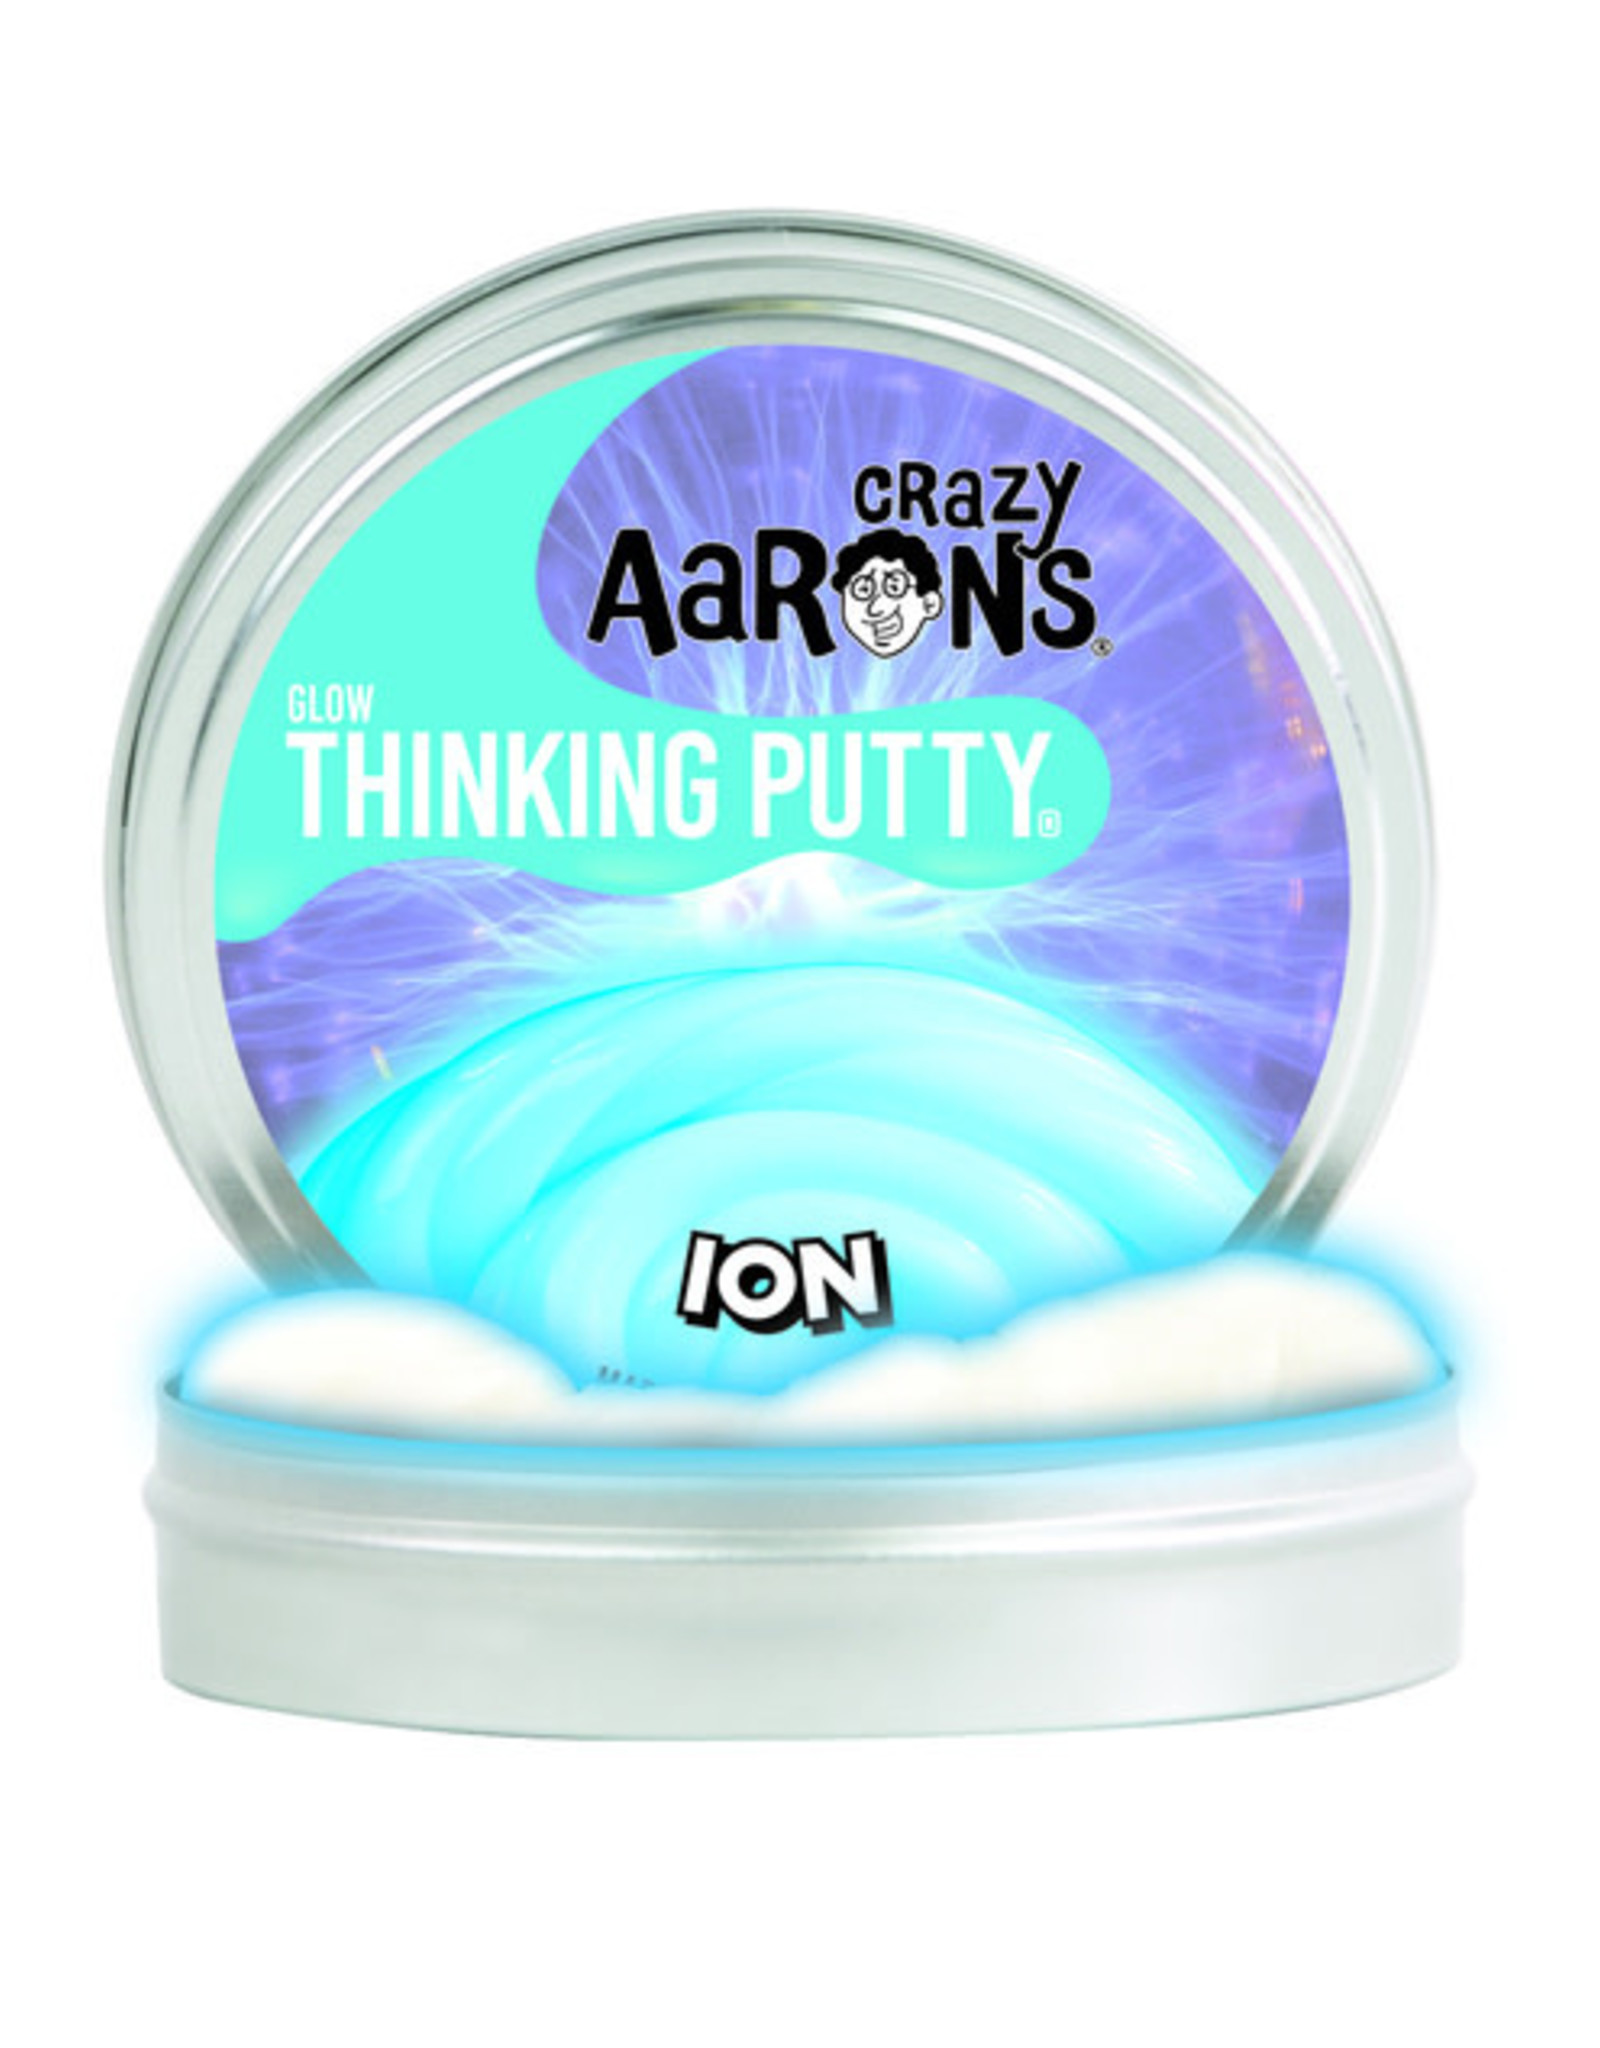 "Crazy Aaron's Thinking Putty 4"" Ion - Glow in the Dark"